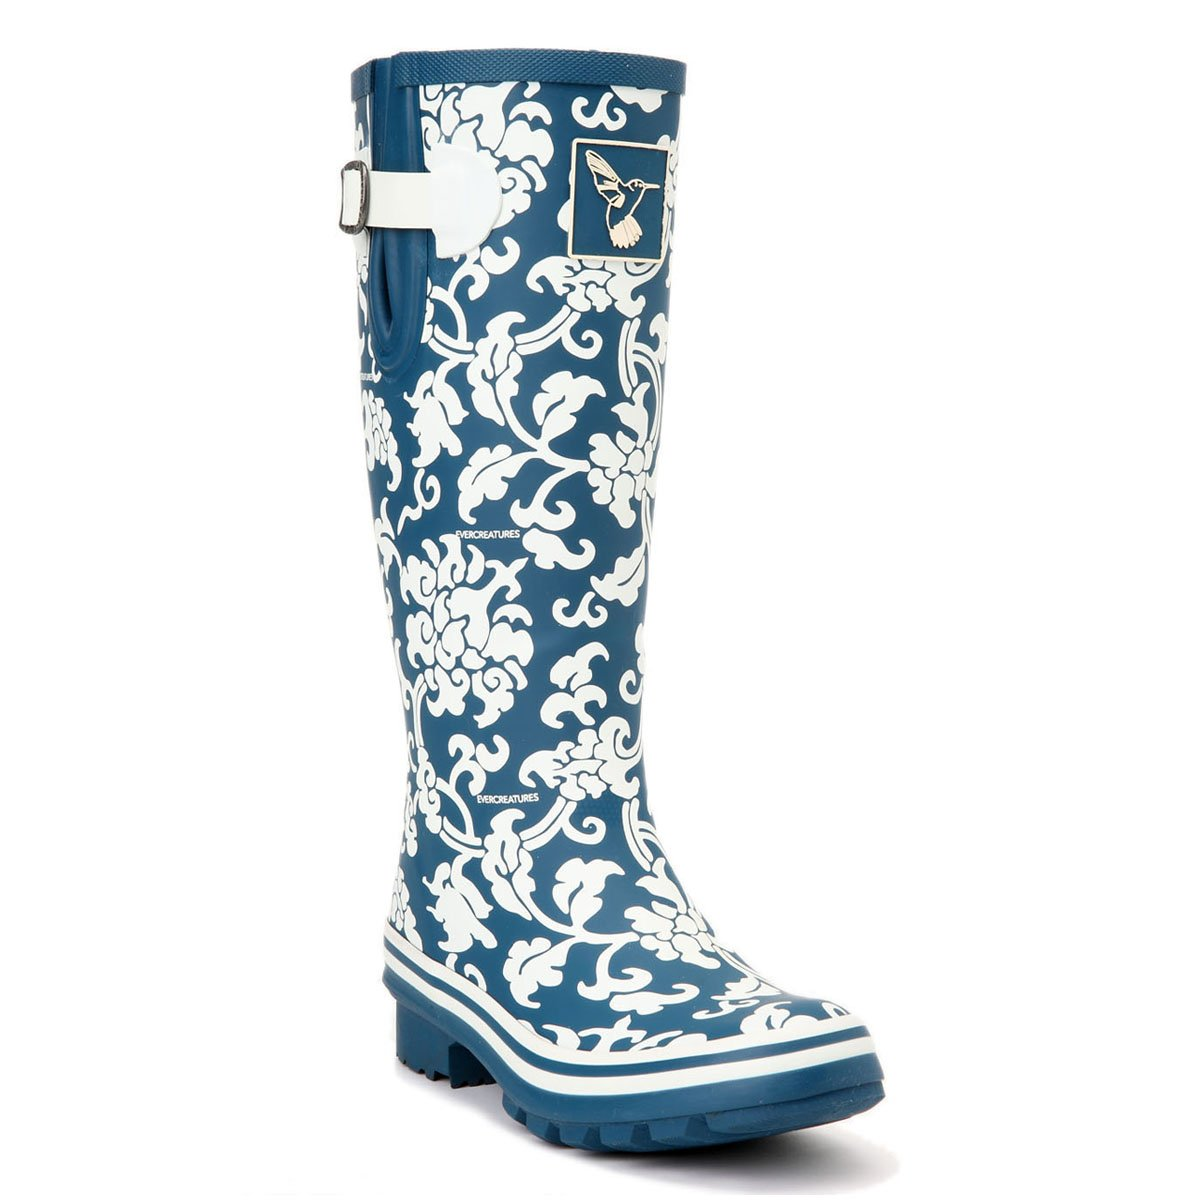 Evercreatures Women's Rain Boots UK Brand Original Tall Rain Boot Gumboots Wellies B00TUZK0HY 6 B(M) US / UK4 / EU37|Blue_delft